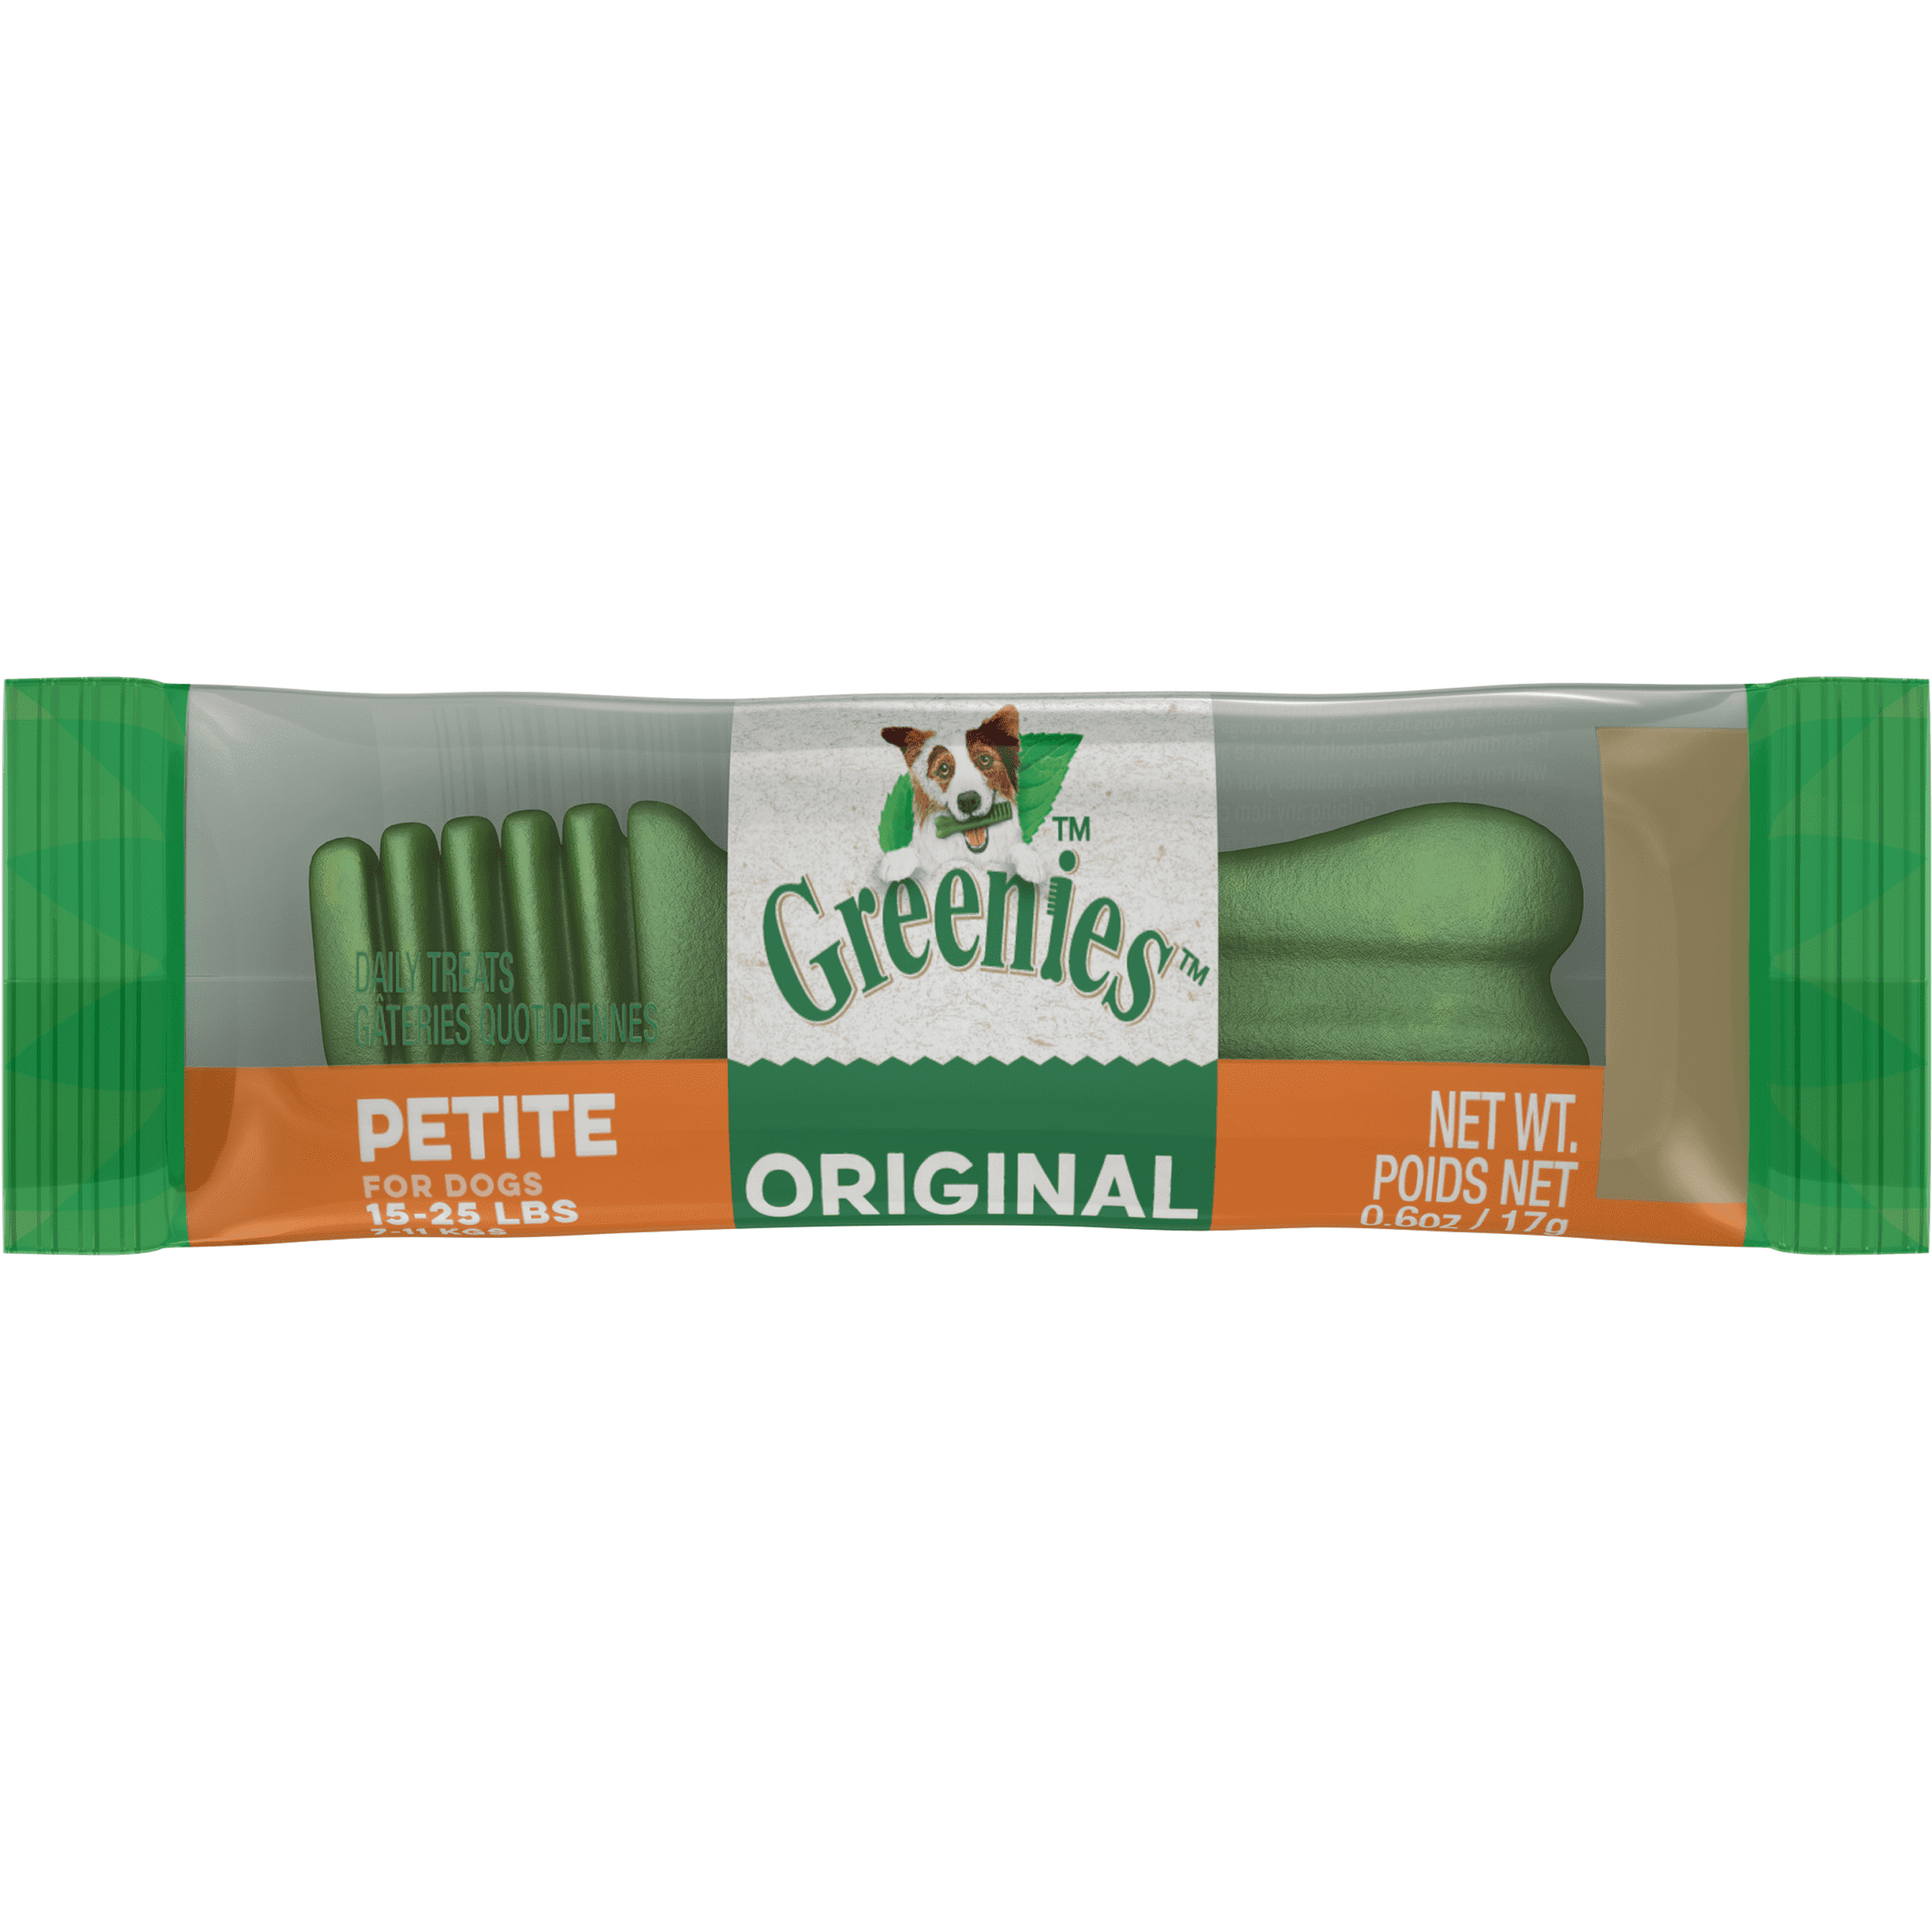 Greenies Original Petite Dental Dog Treats - Individually Wrapped, 1-count (Size: 1-count) Image